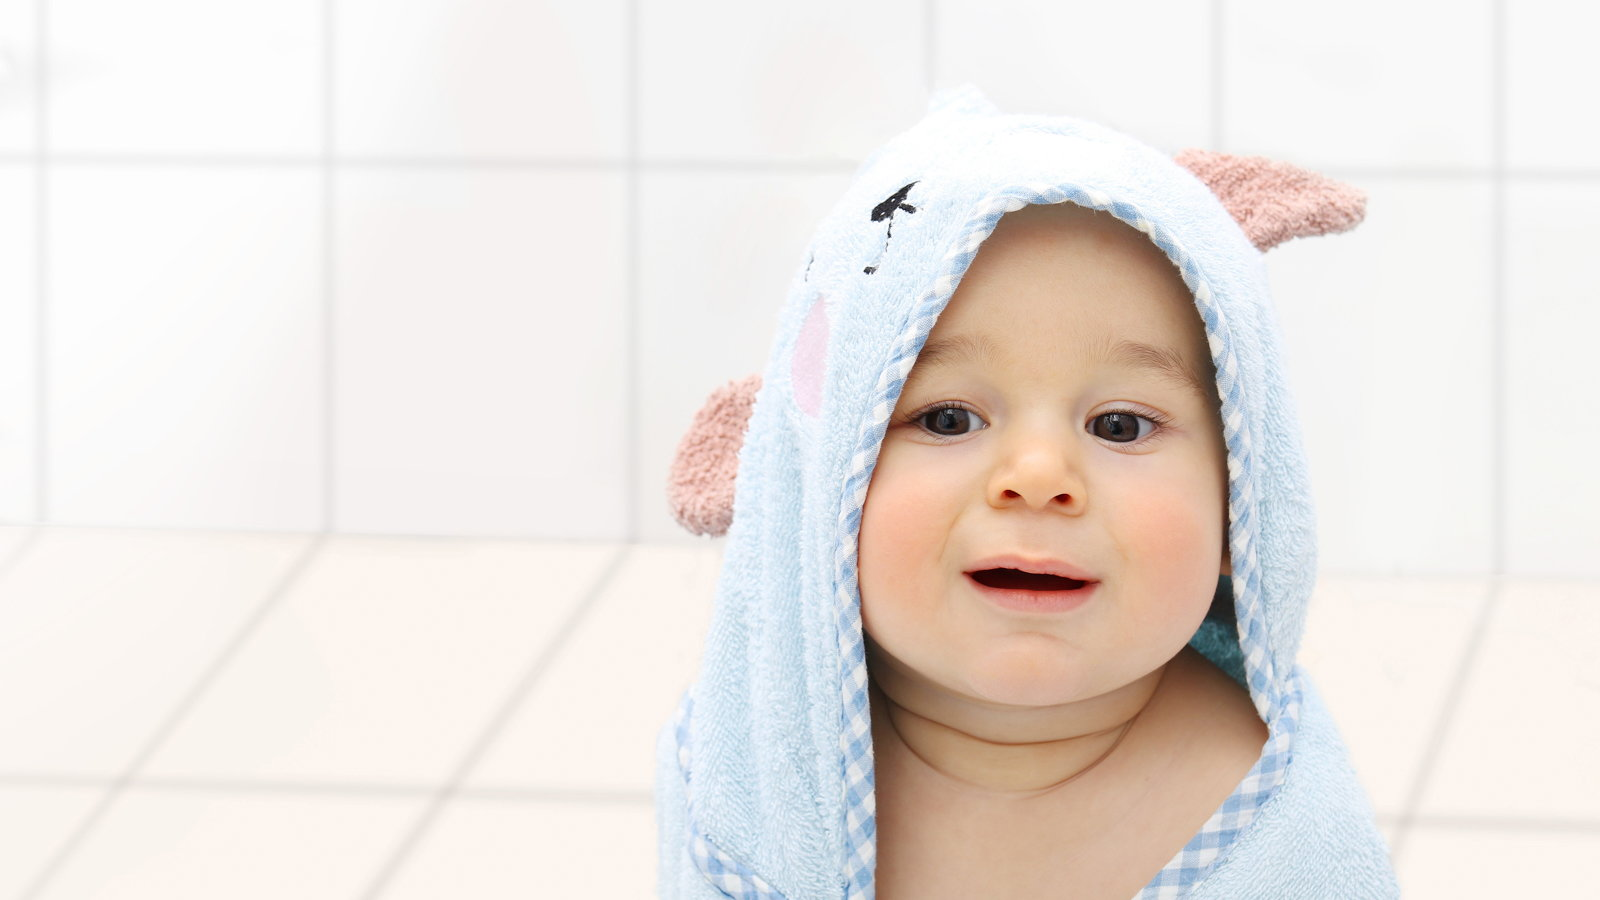 baby in bathroom after a bath